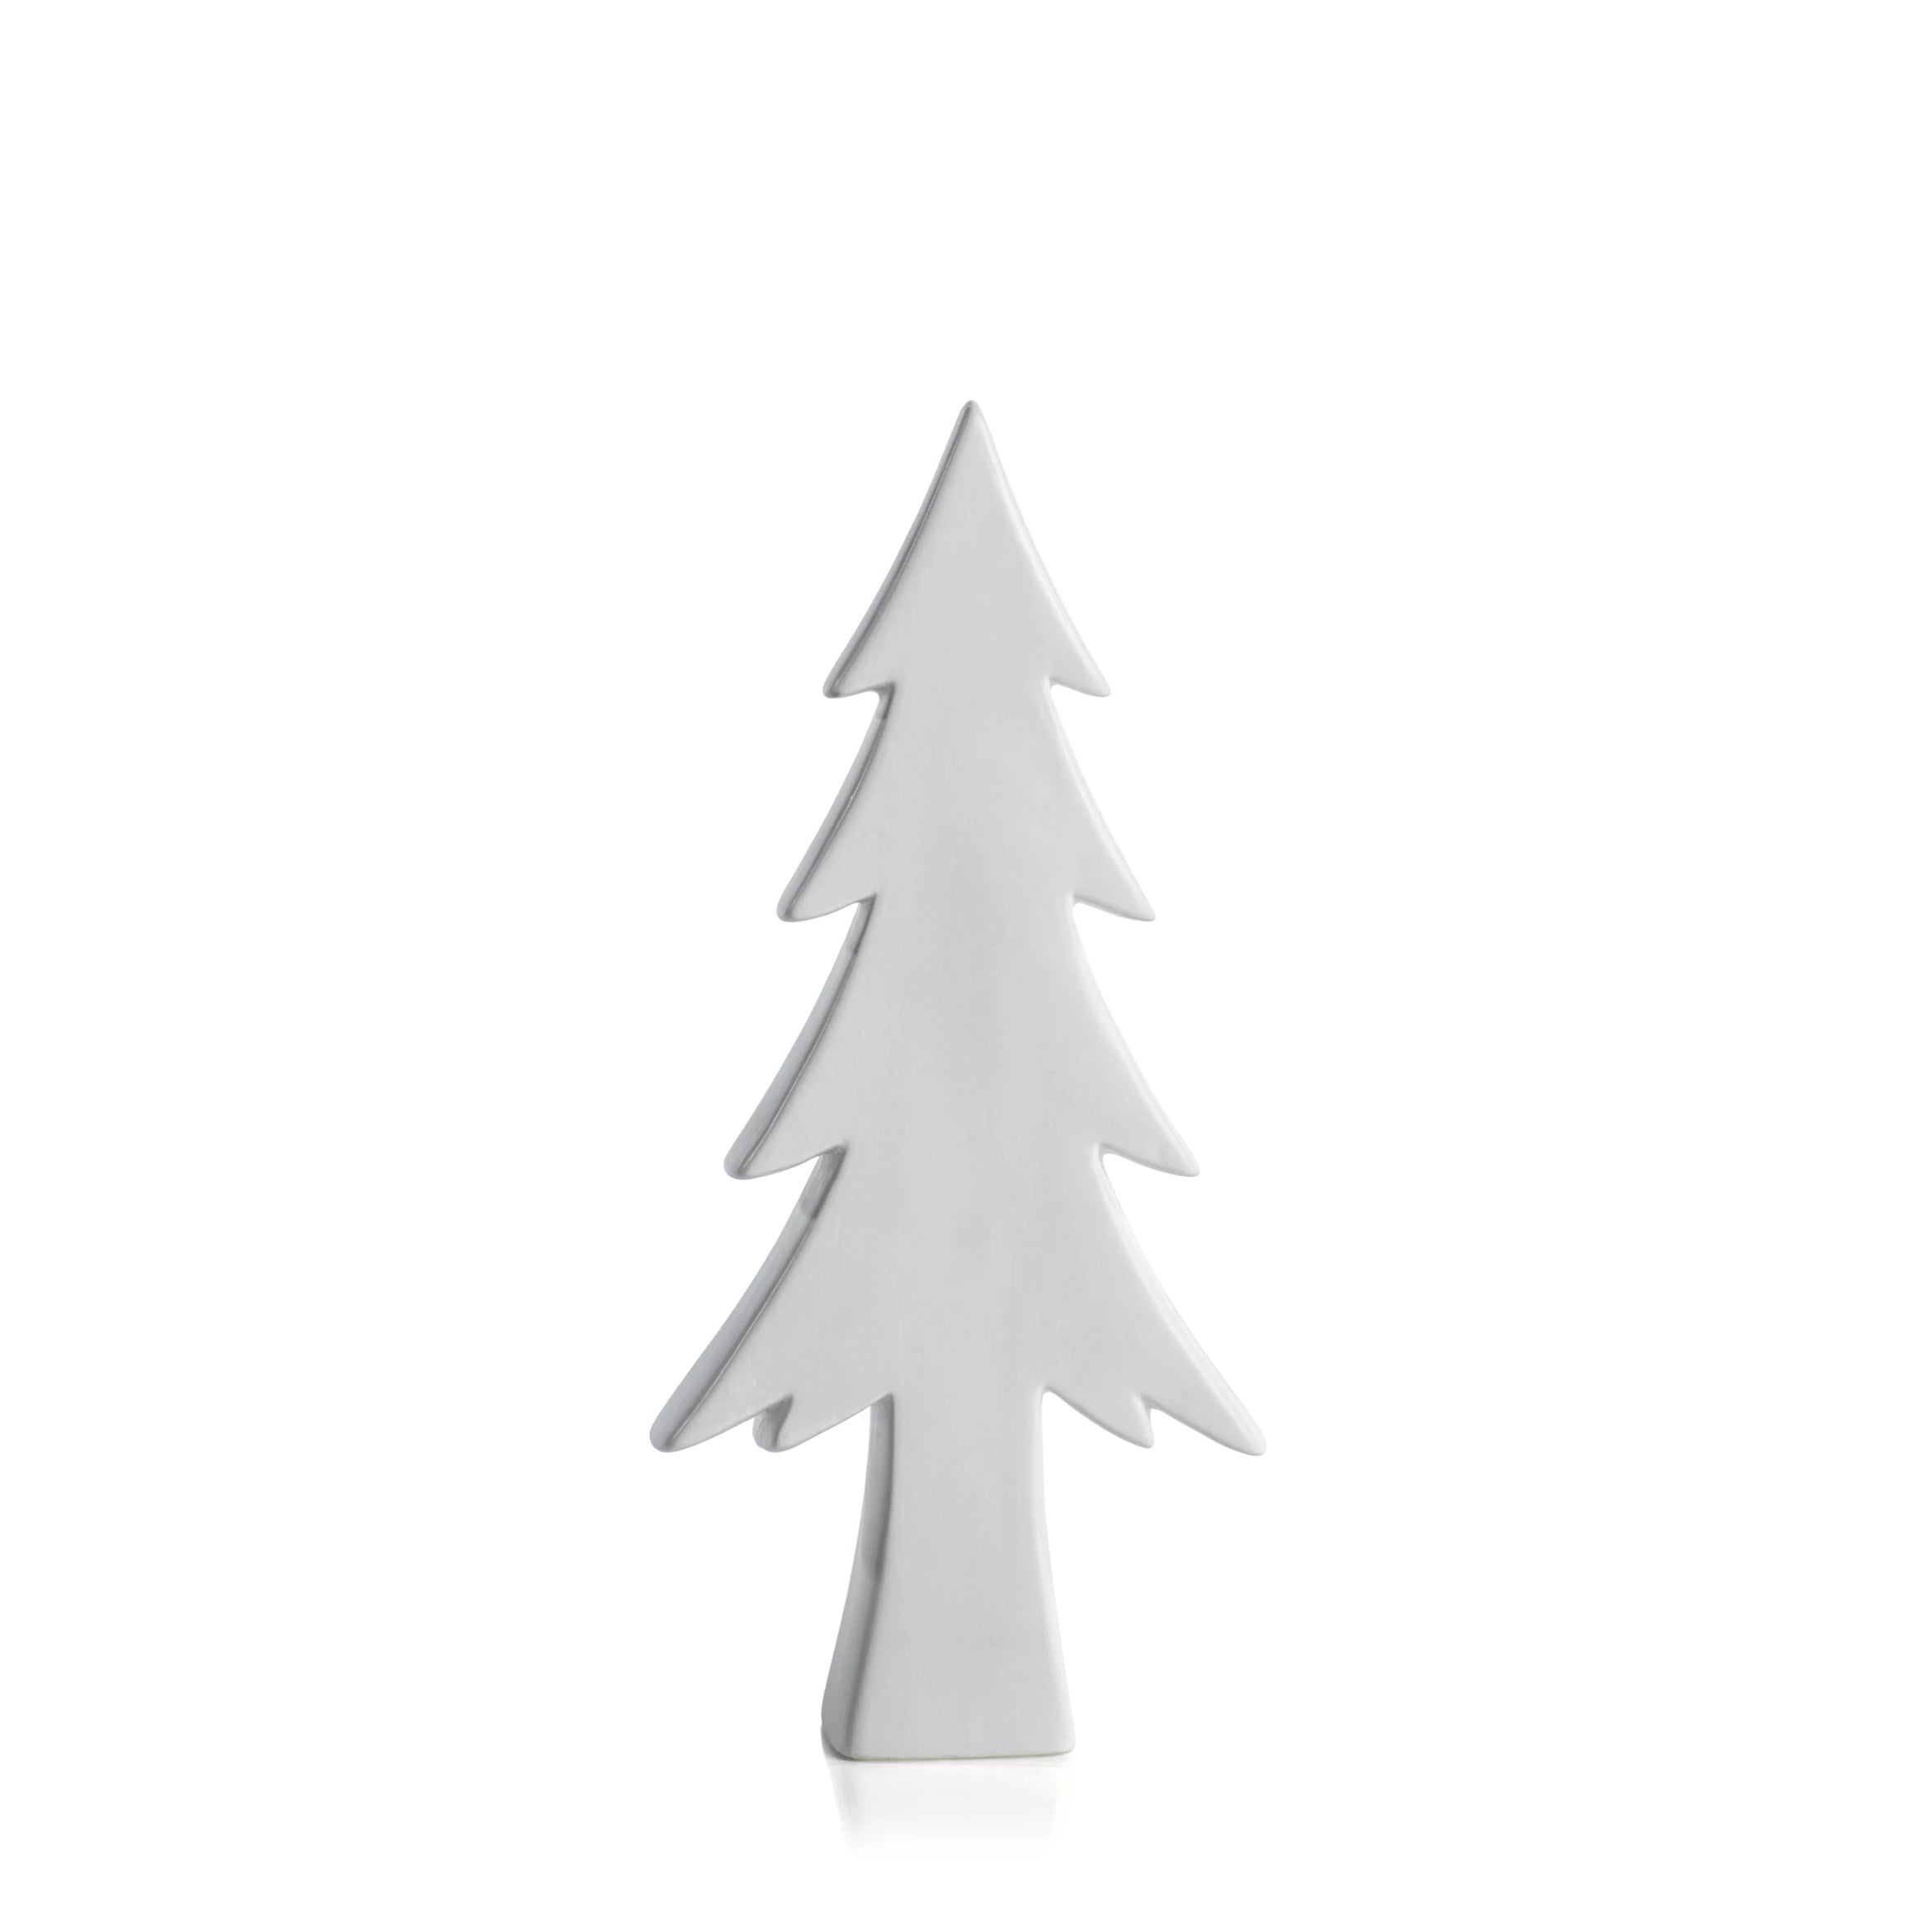 Matt White Decorative Tree